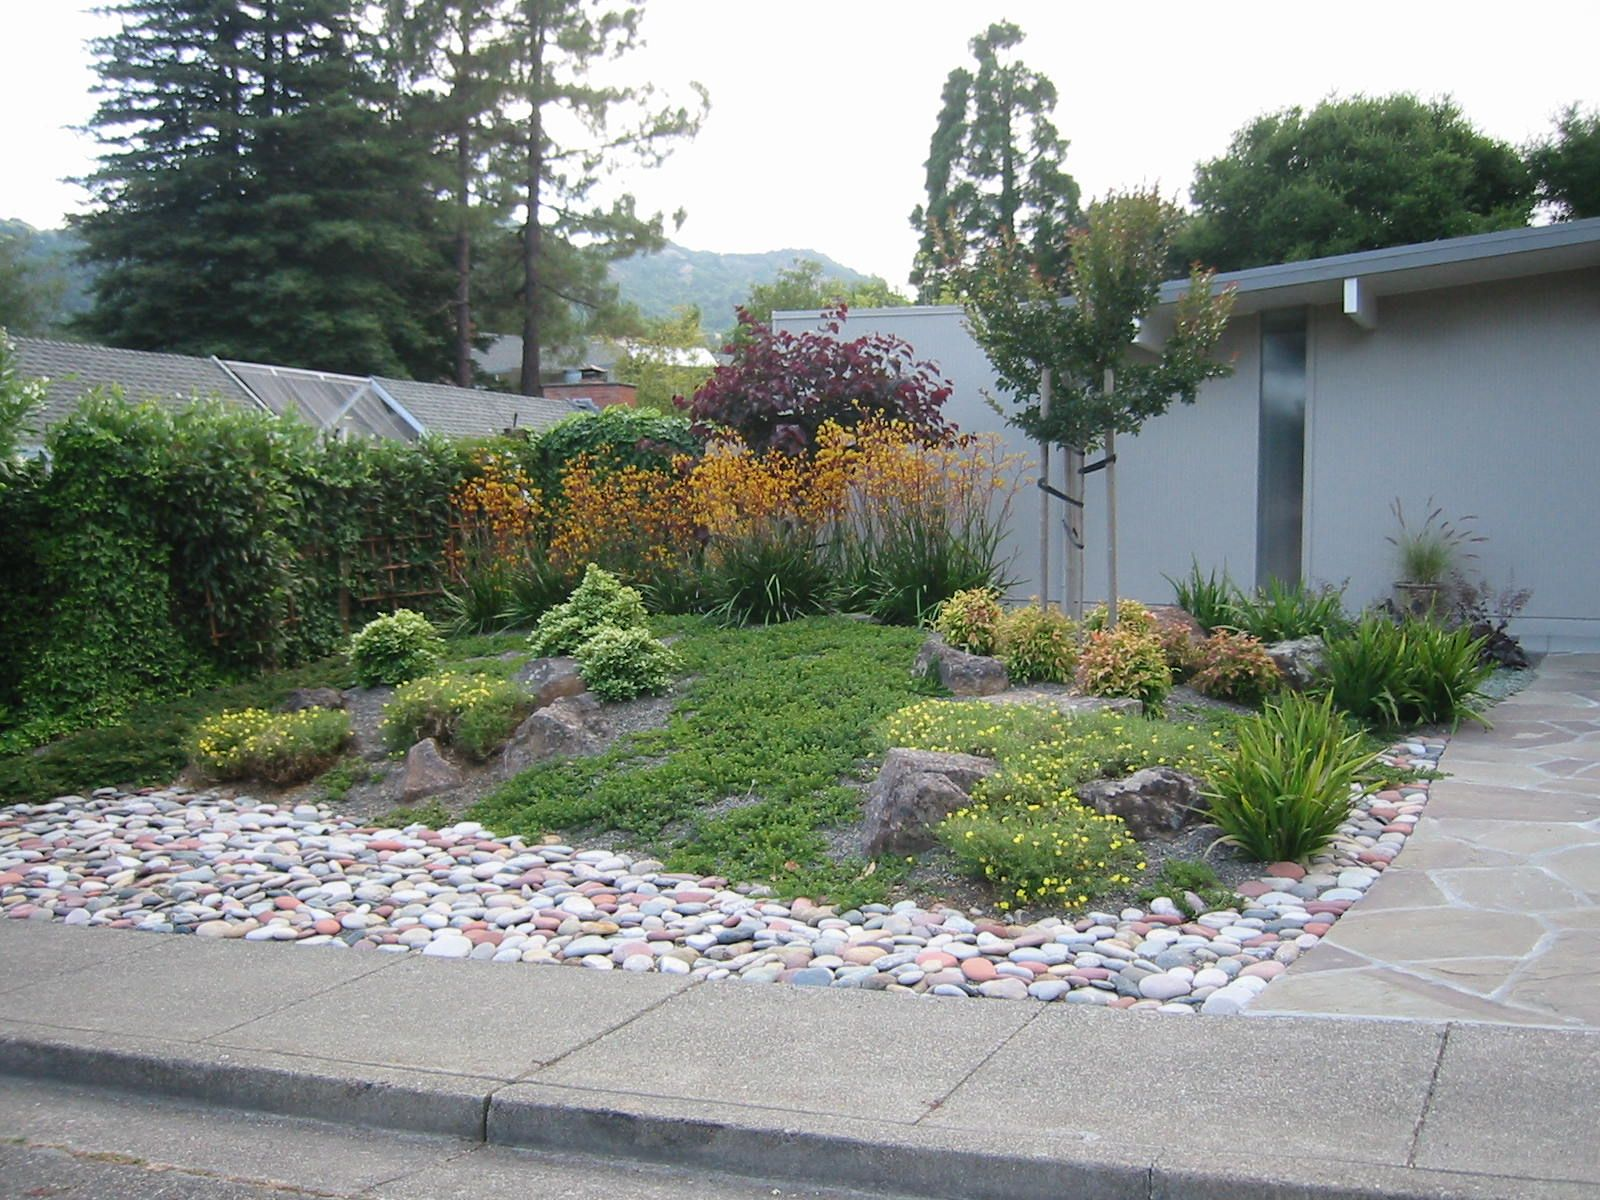 Pathways amp steppers sisson landscapes - Curved Beds With Grass Rocks Mulch Google Search